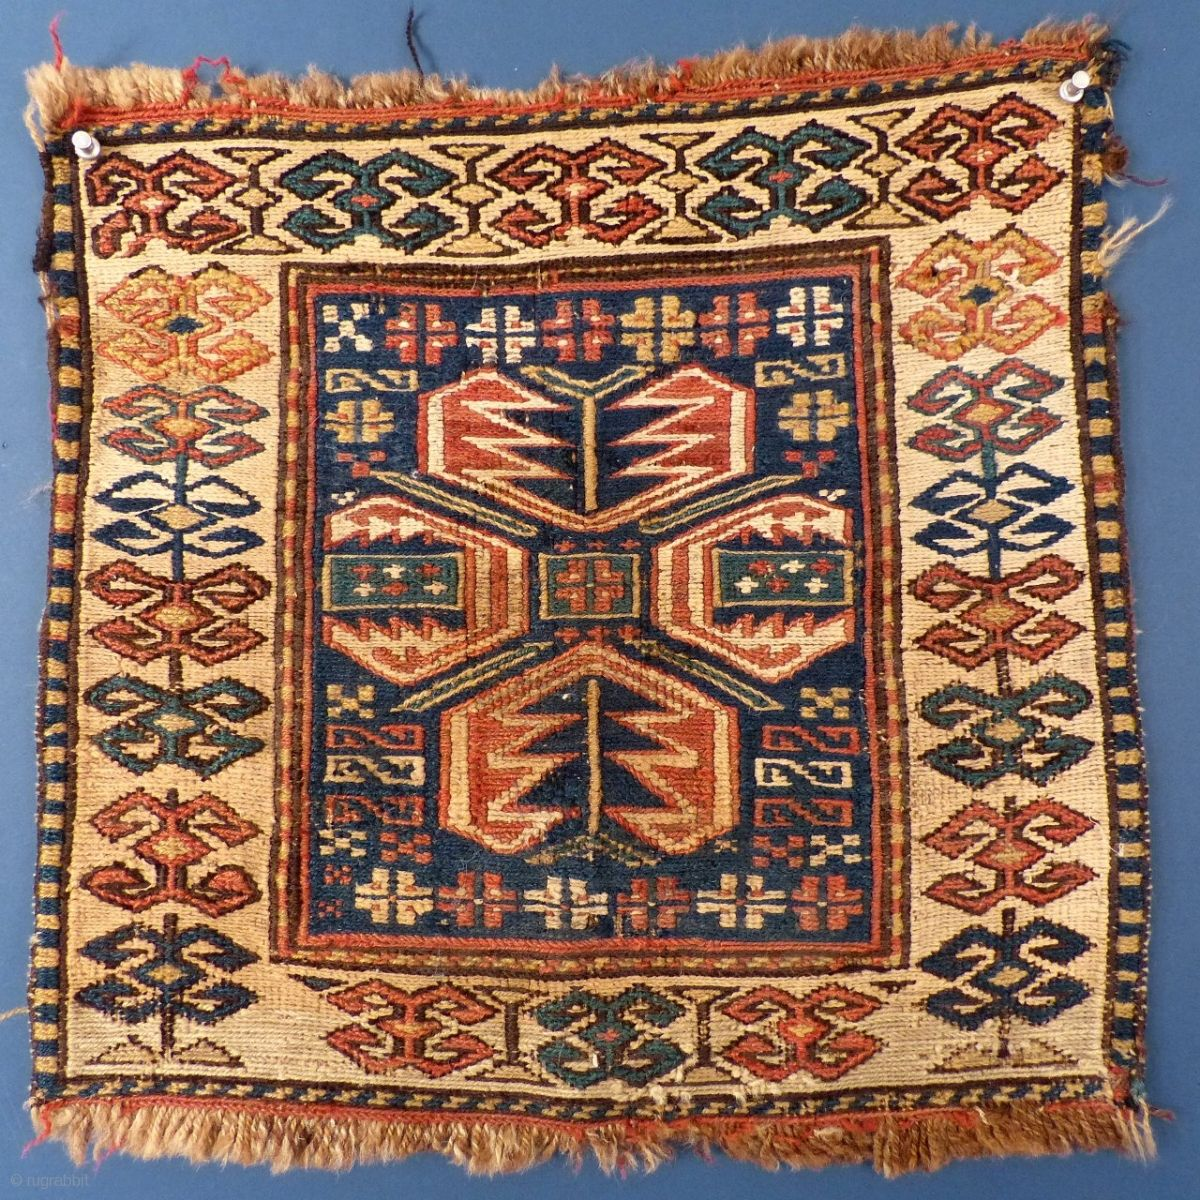 Soumac Bag Face Wool Cotton 17 1 2 X 17 Excellent Condition Price On Request Rugs On Carpet Asian Rugs Asian Textiles